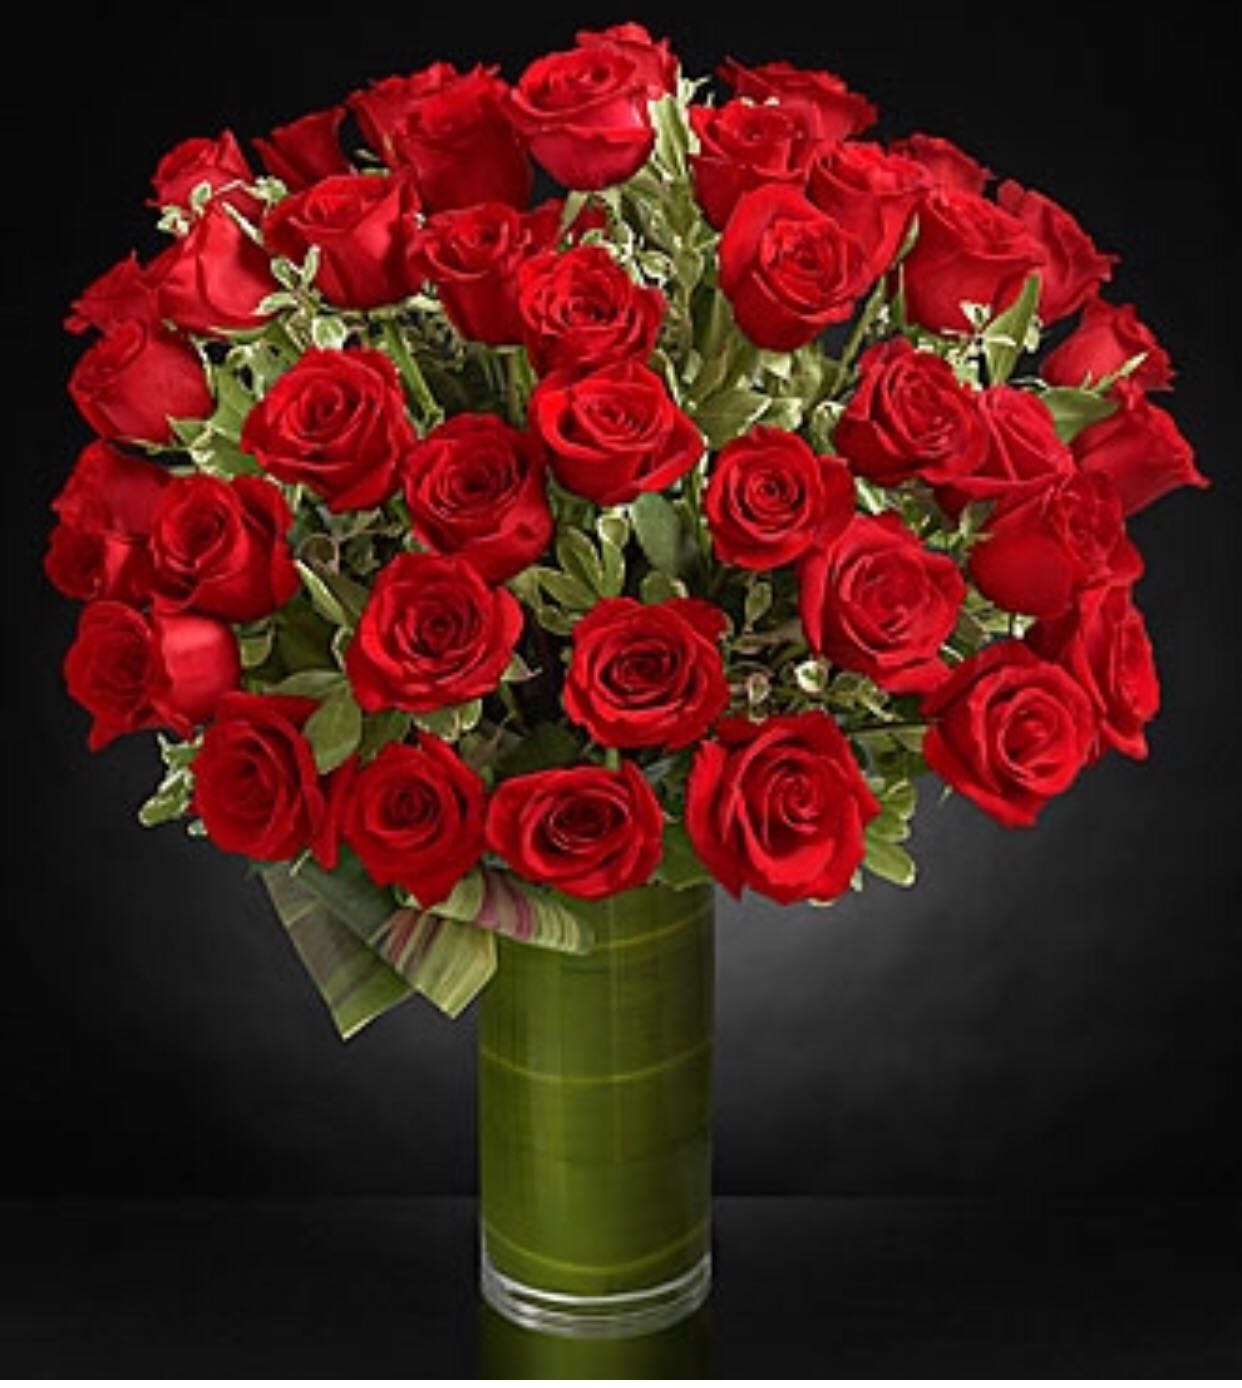 4 dz red roses in a vase sunlight flower shop. Black Bedroom Furniture Sets. Home Design Ideas